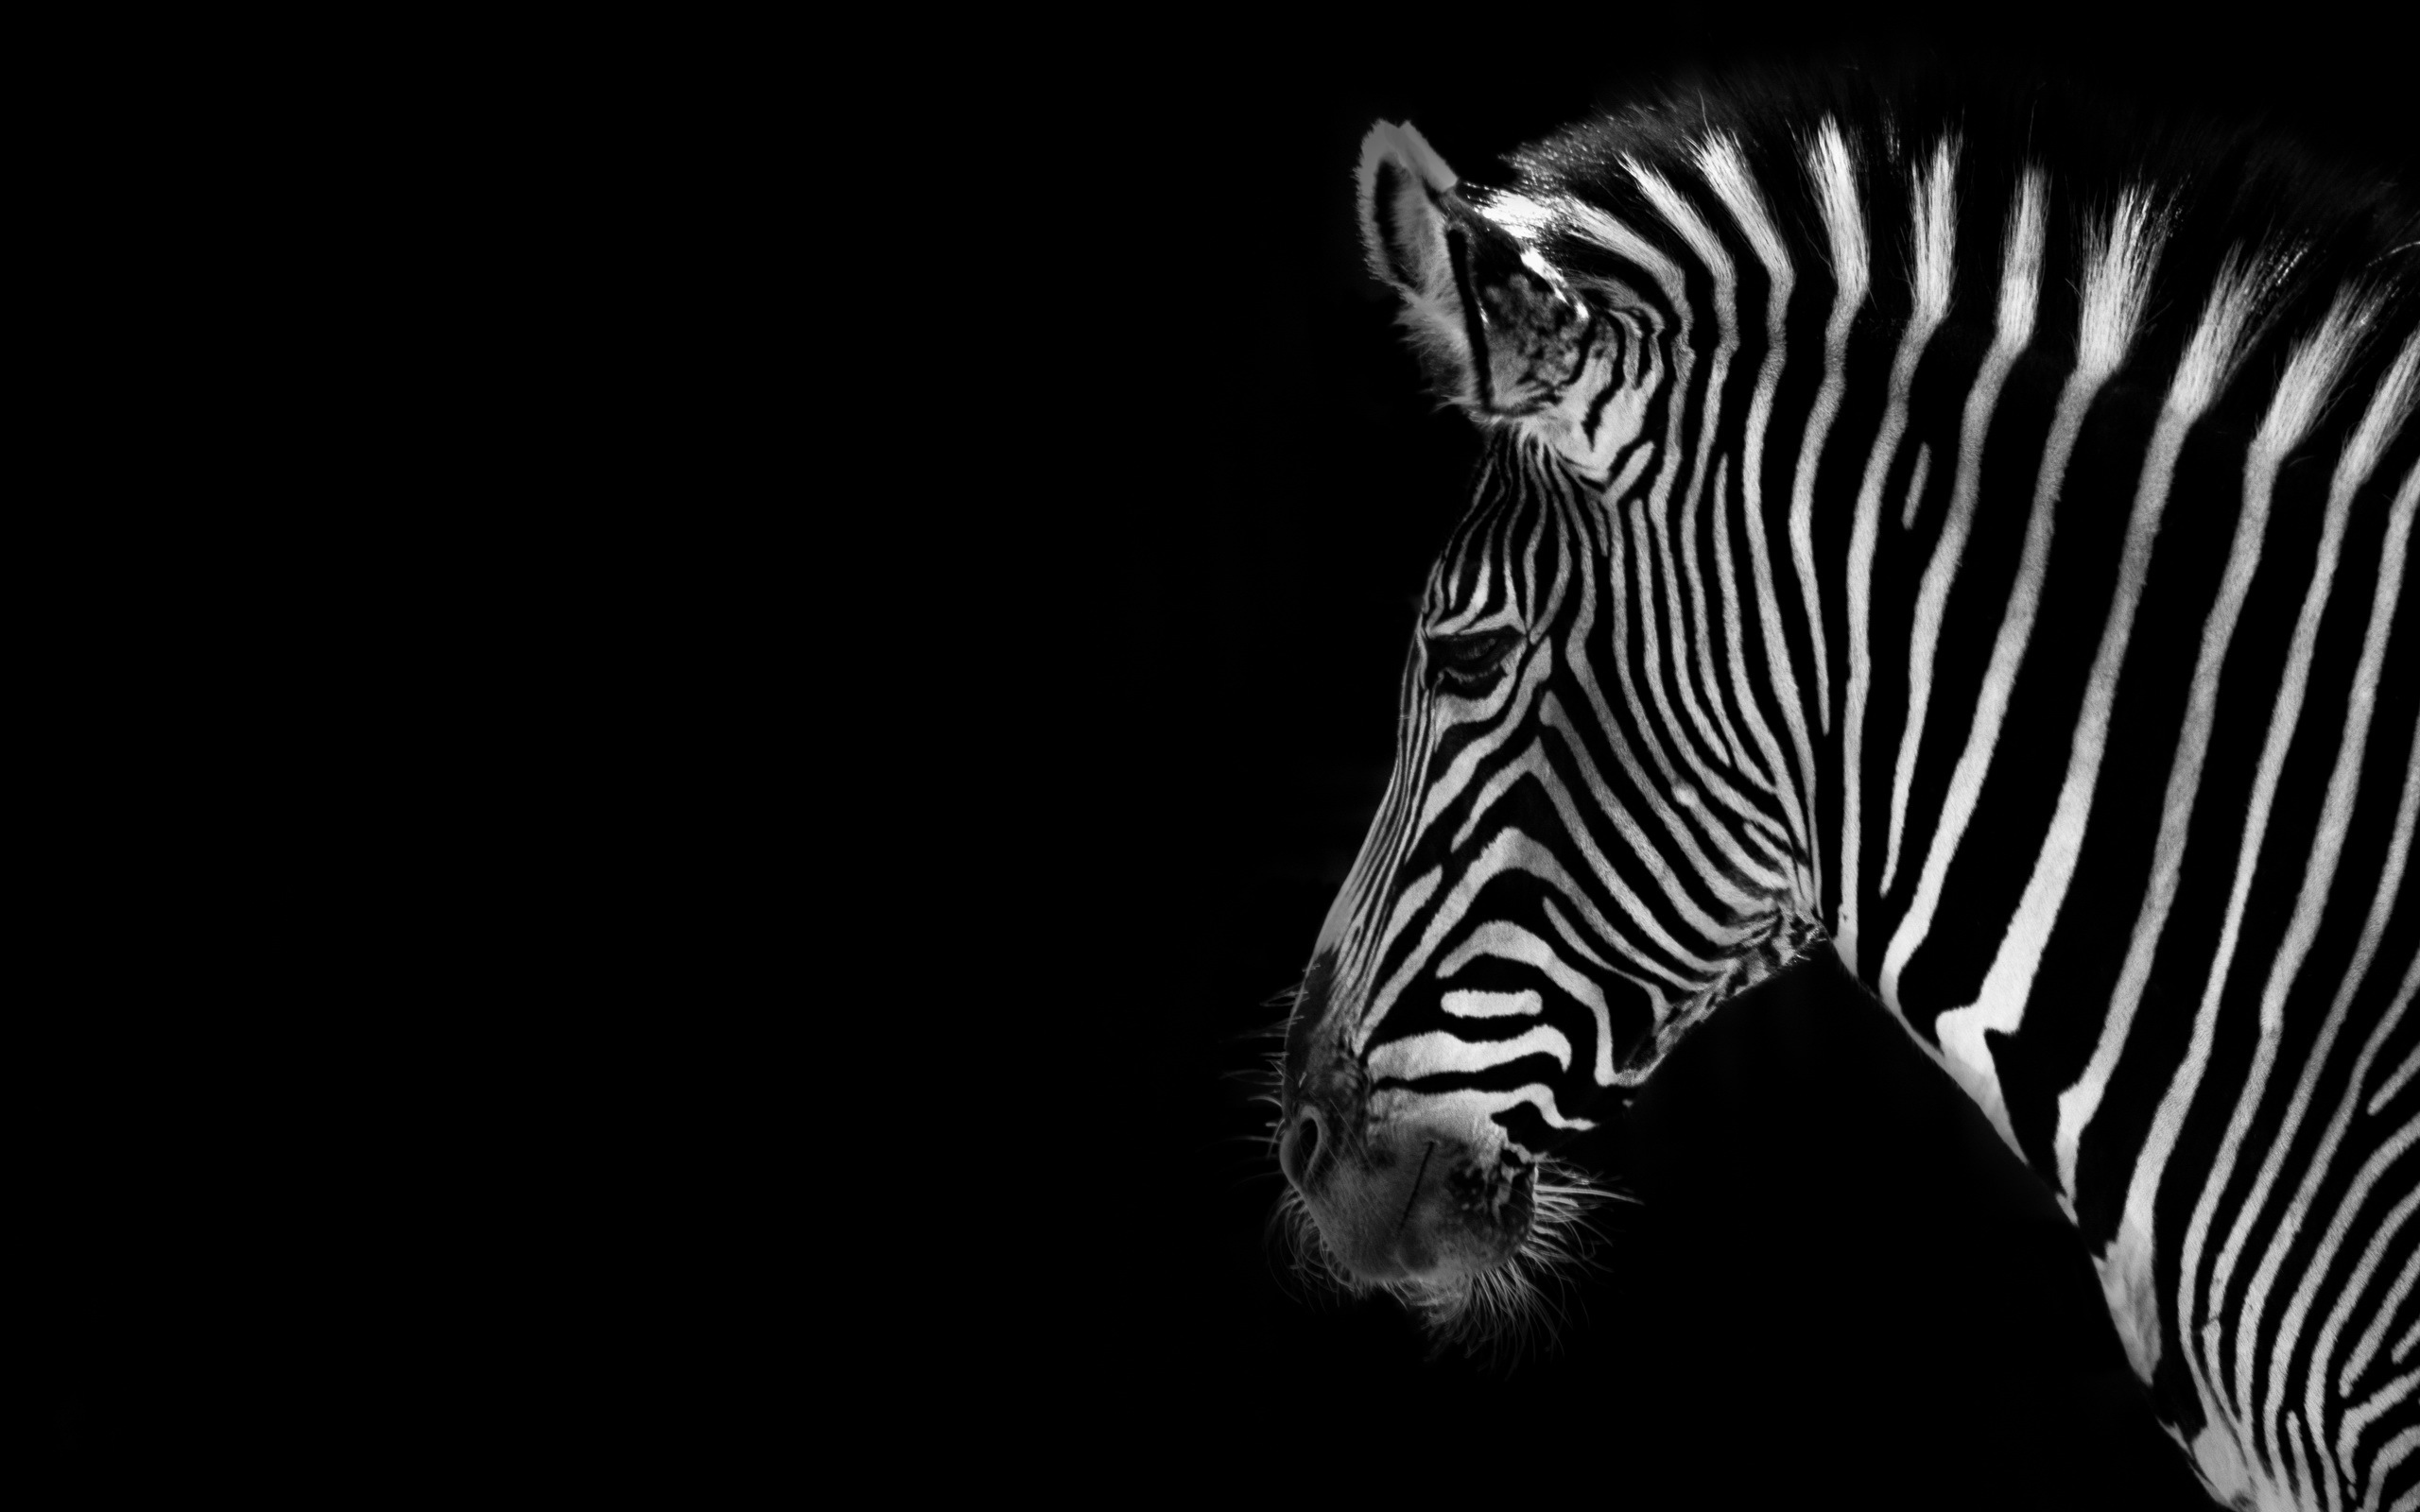 Zebra Full HD Wallpaper and Background 2560x1600 ID387127